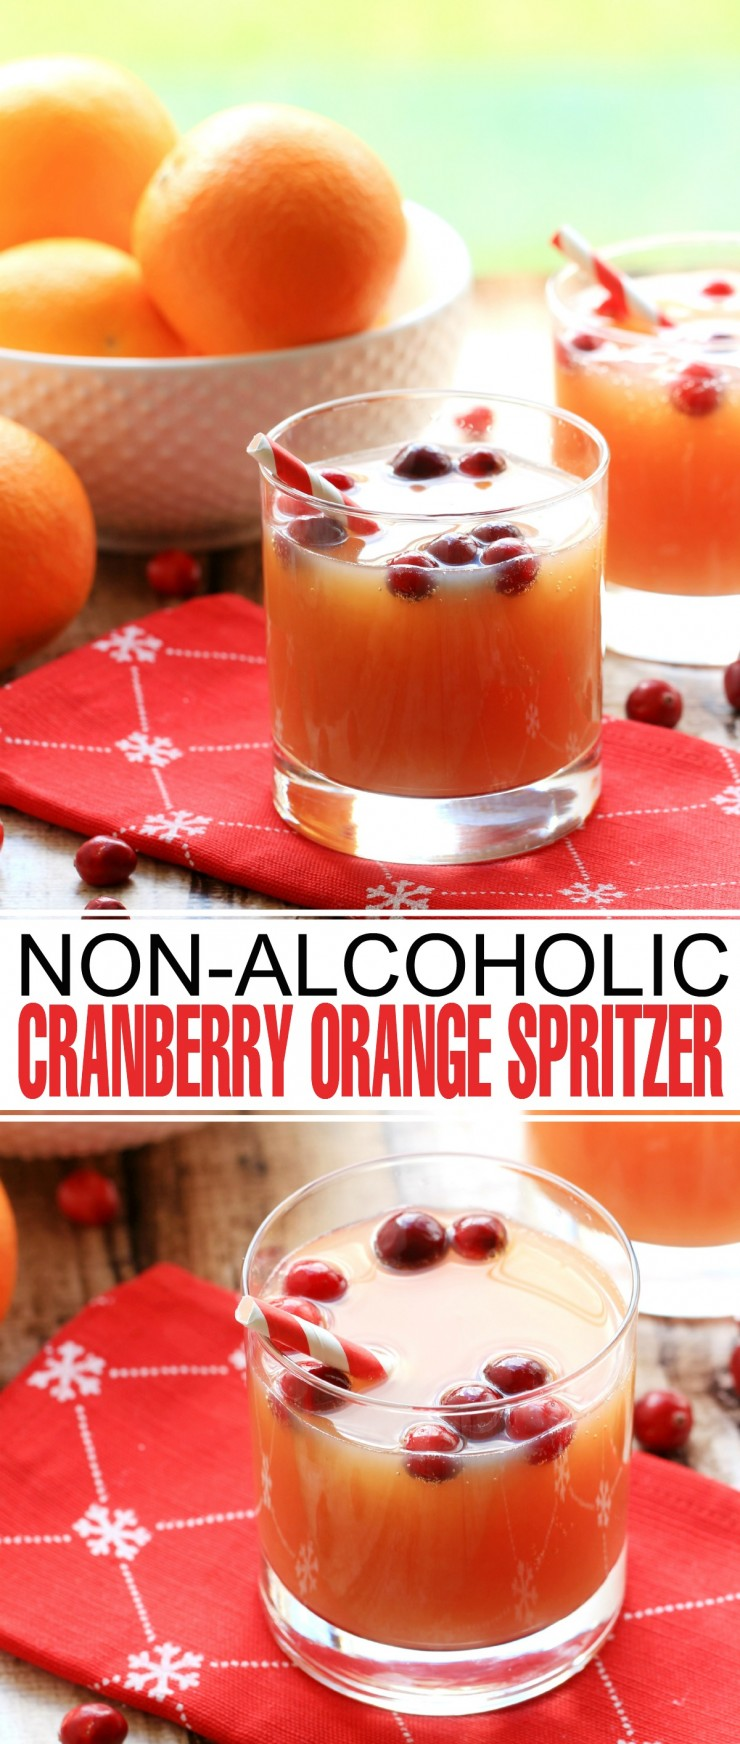 This Non-Alcoholic Cranberry Orange Spritzer is a festive drink for the holidays that everyone can enjoy.